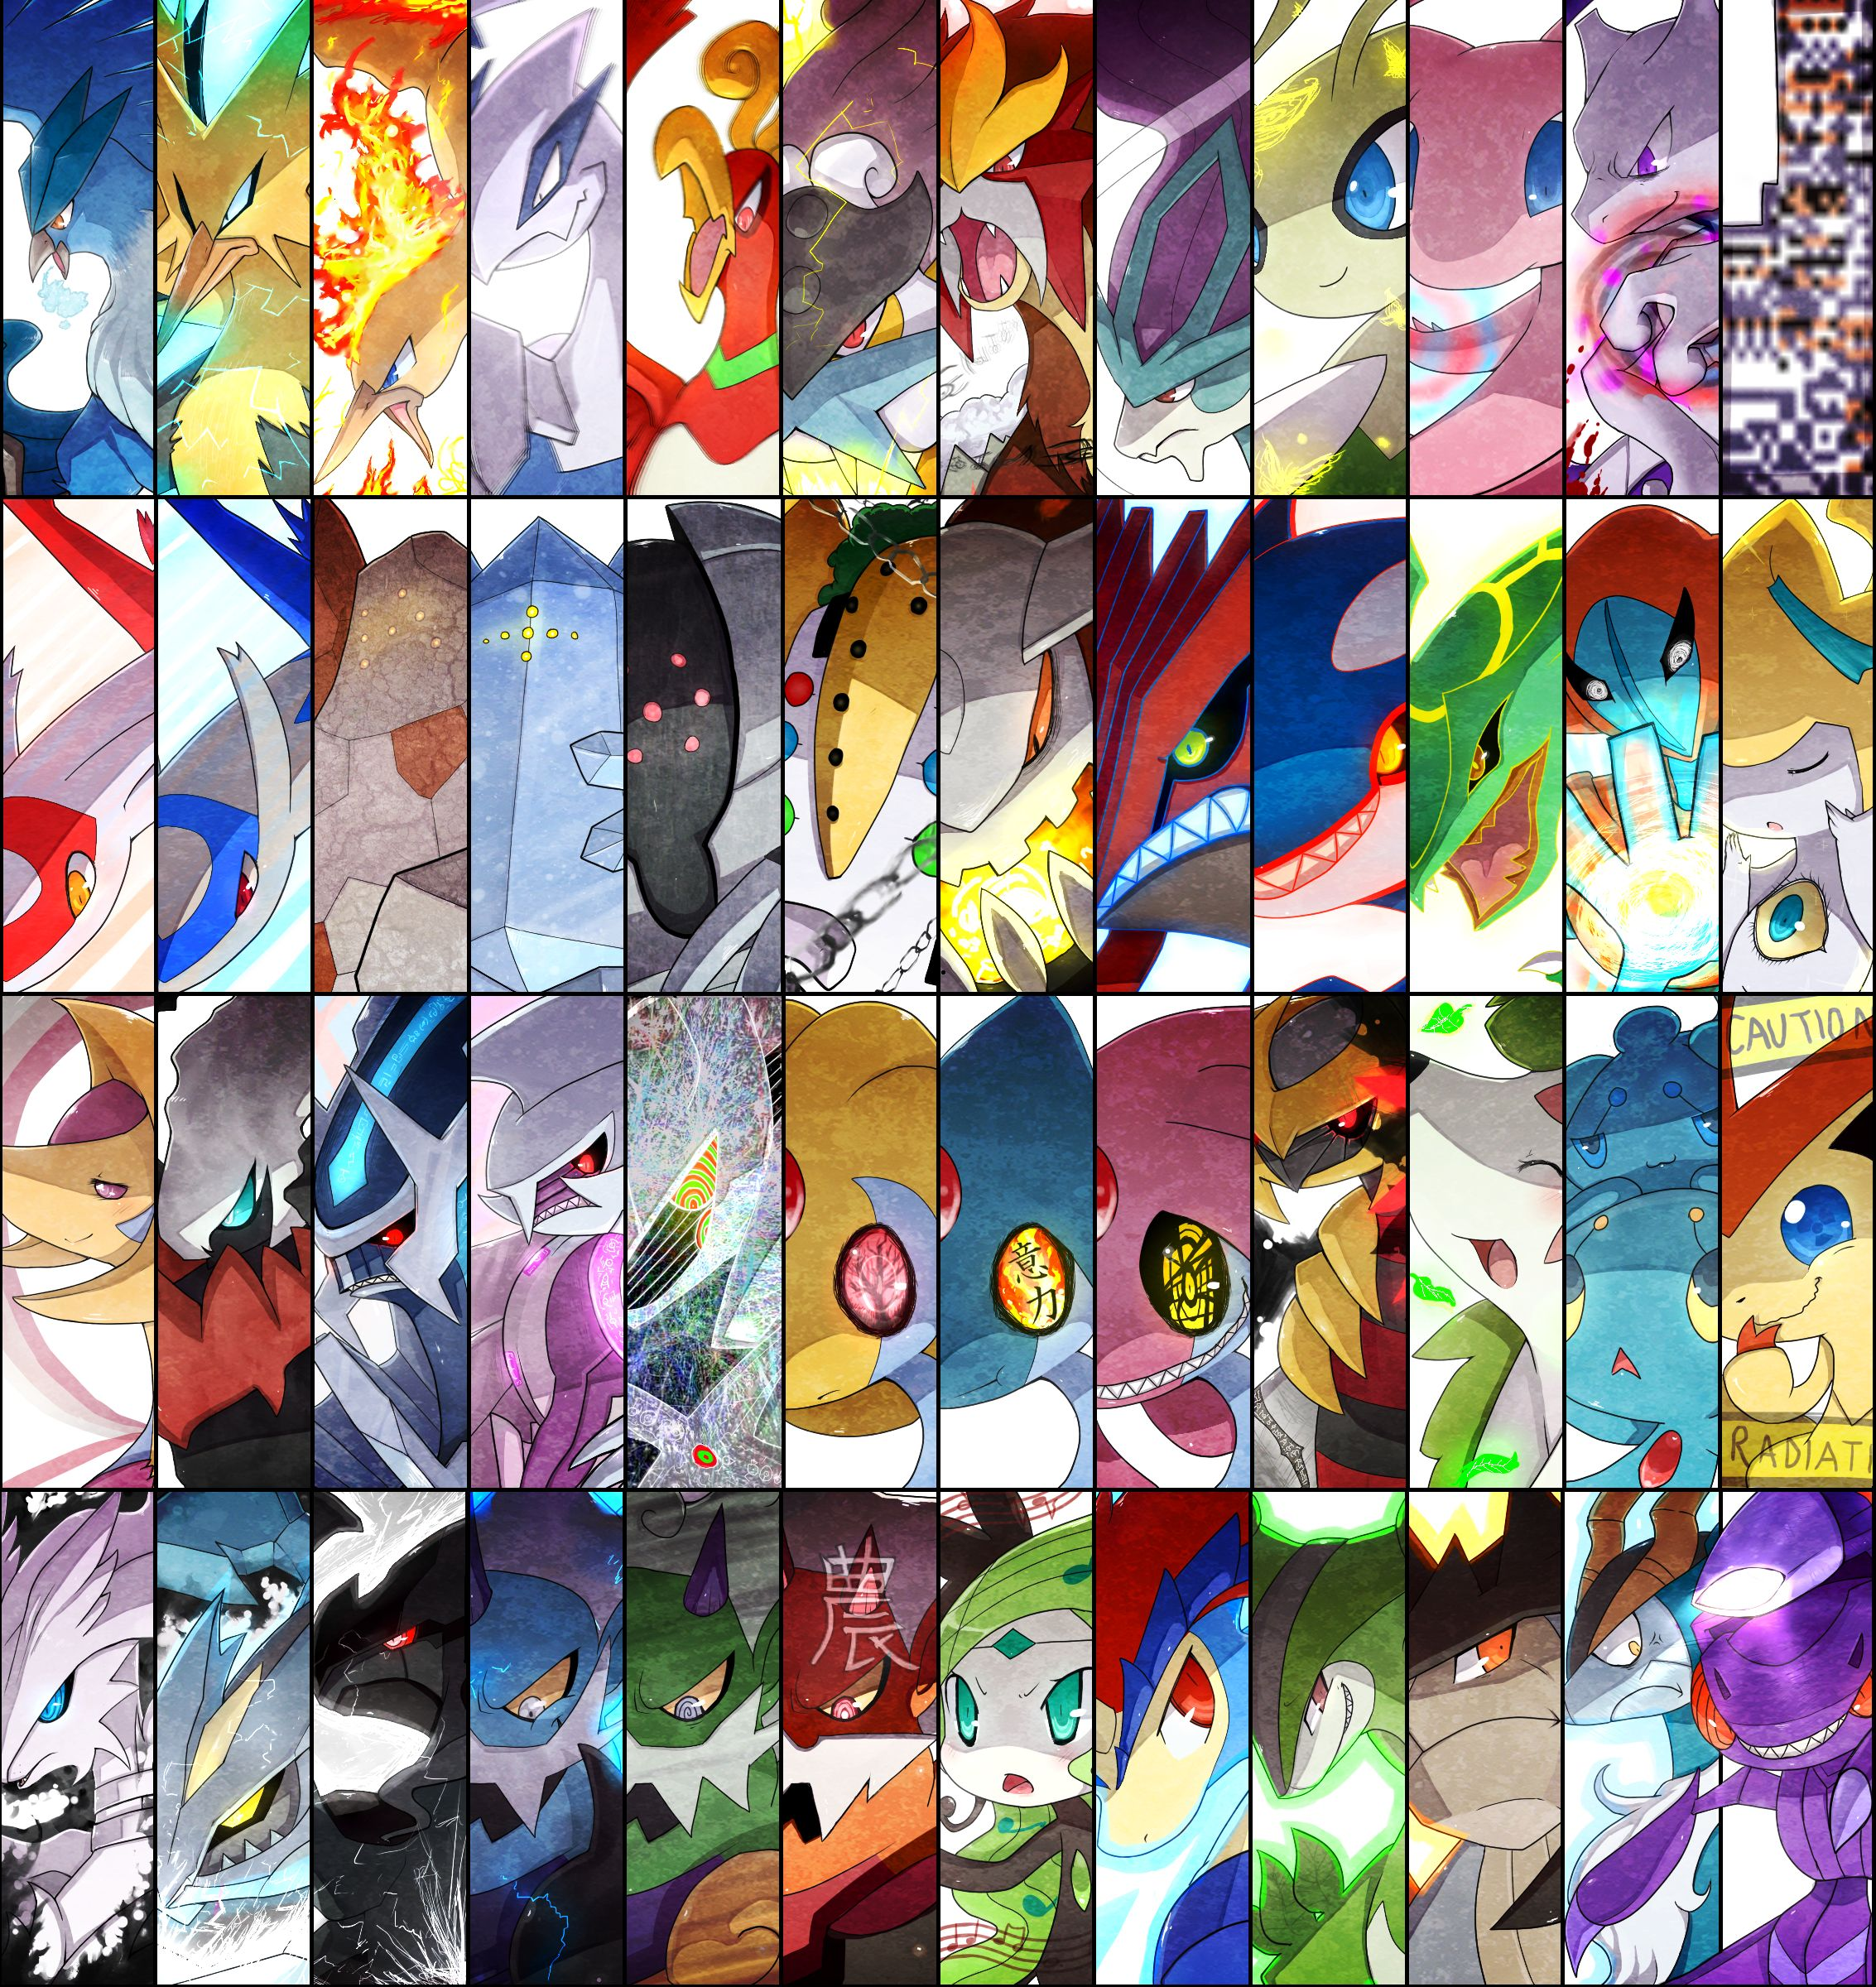 Azelf - Pokémon - Zerochan Anime Image Board